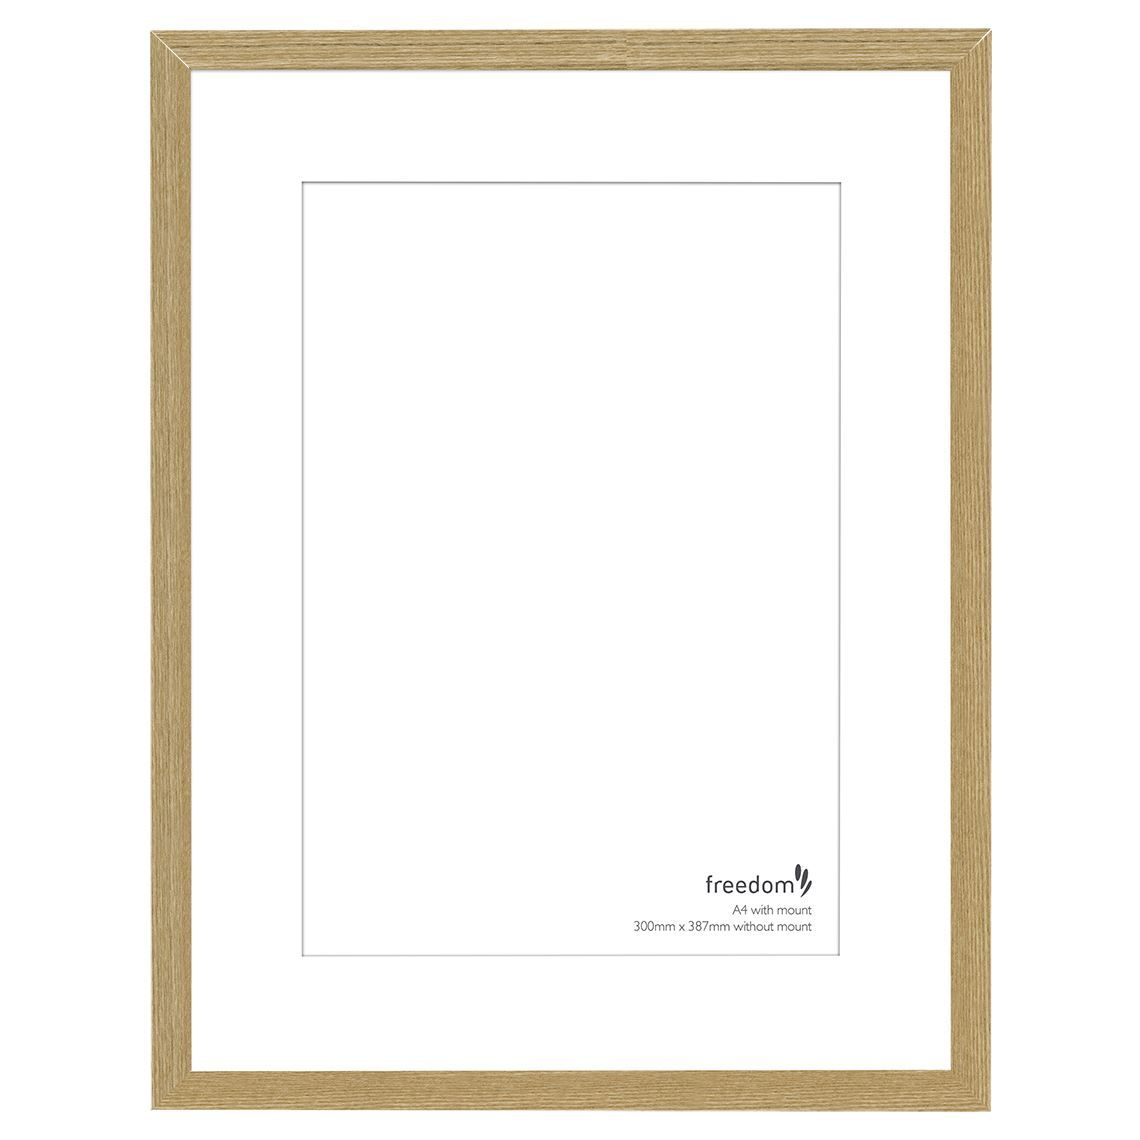 Freedom Arden A4 Matted Frame Size W 30cm X D 4cm X H 39cm In Oak